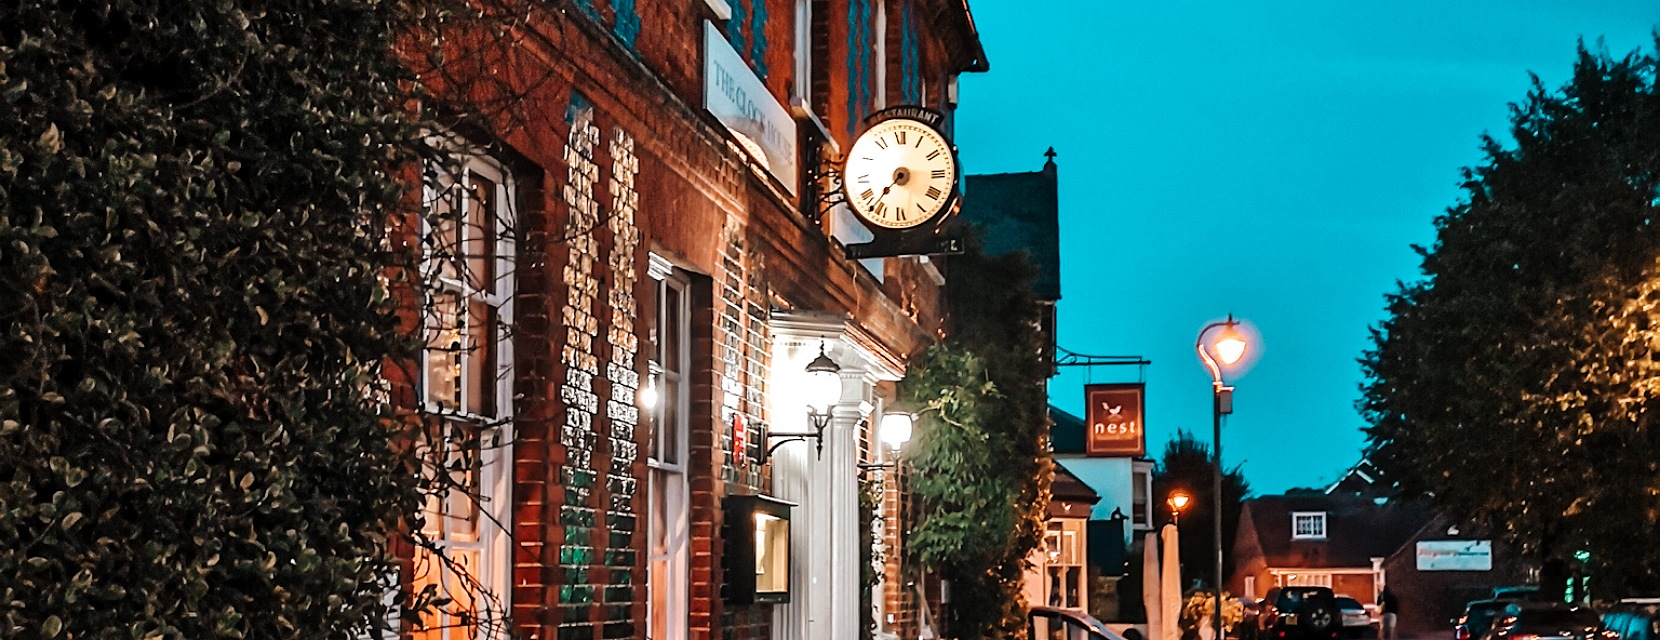 Restaurant recommendation: The Clock House, romantic fine dining in Surrey 51